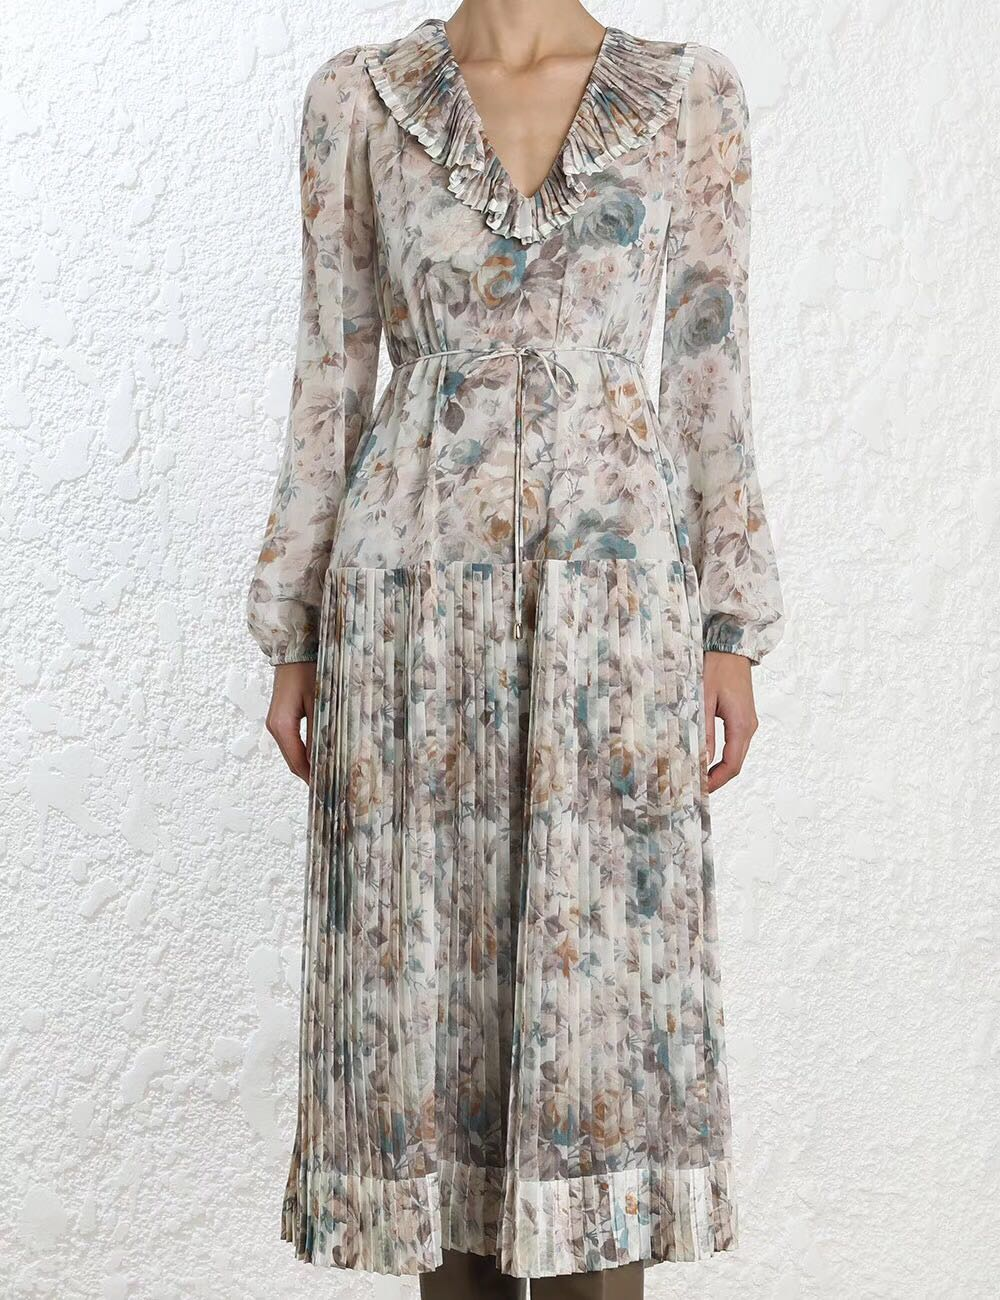 Women Pearl Faded Floral Print Long Sleeve Drop Waist Pleated Panels V Neck  Fleeting Folds Midi Dress-in Dresses from Women s Clothing on  Aliexpress.com ... 6ce344371